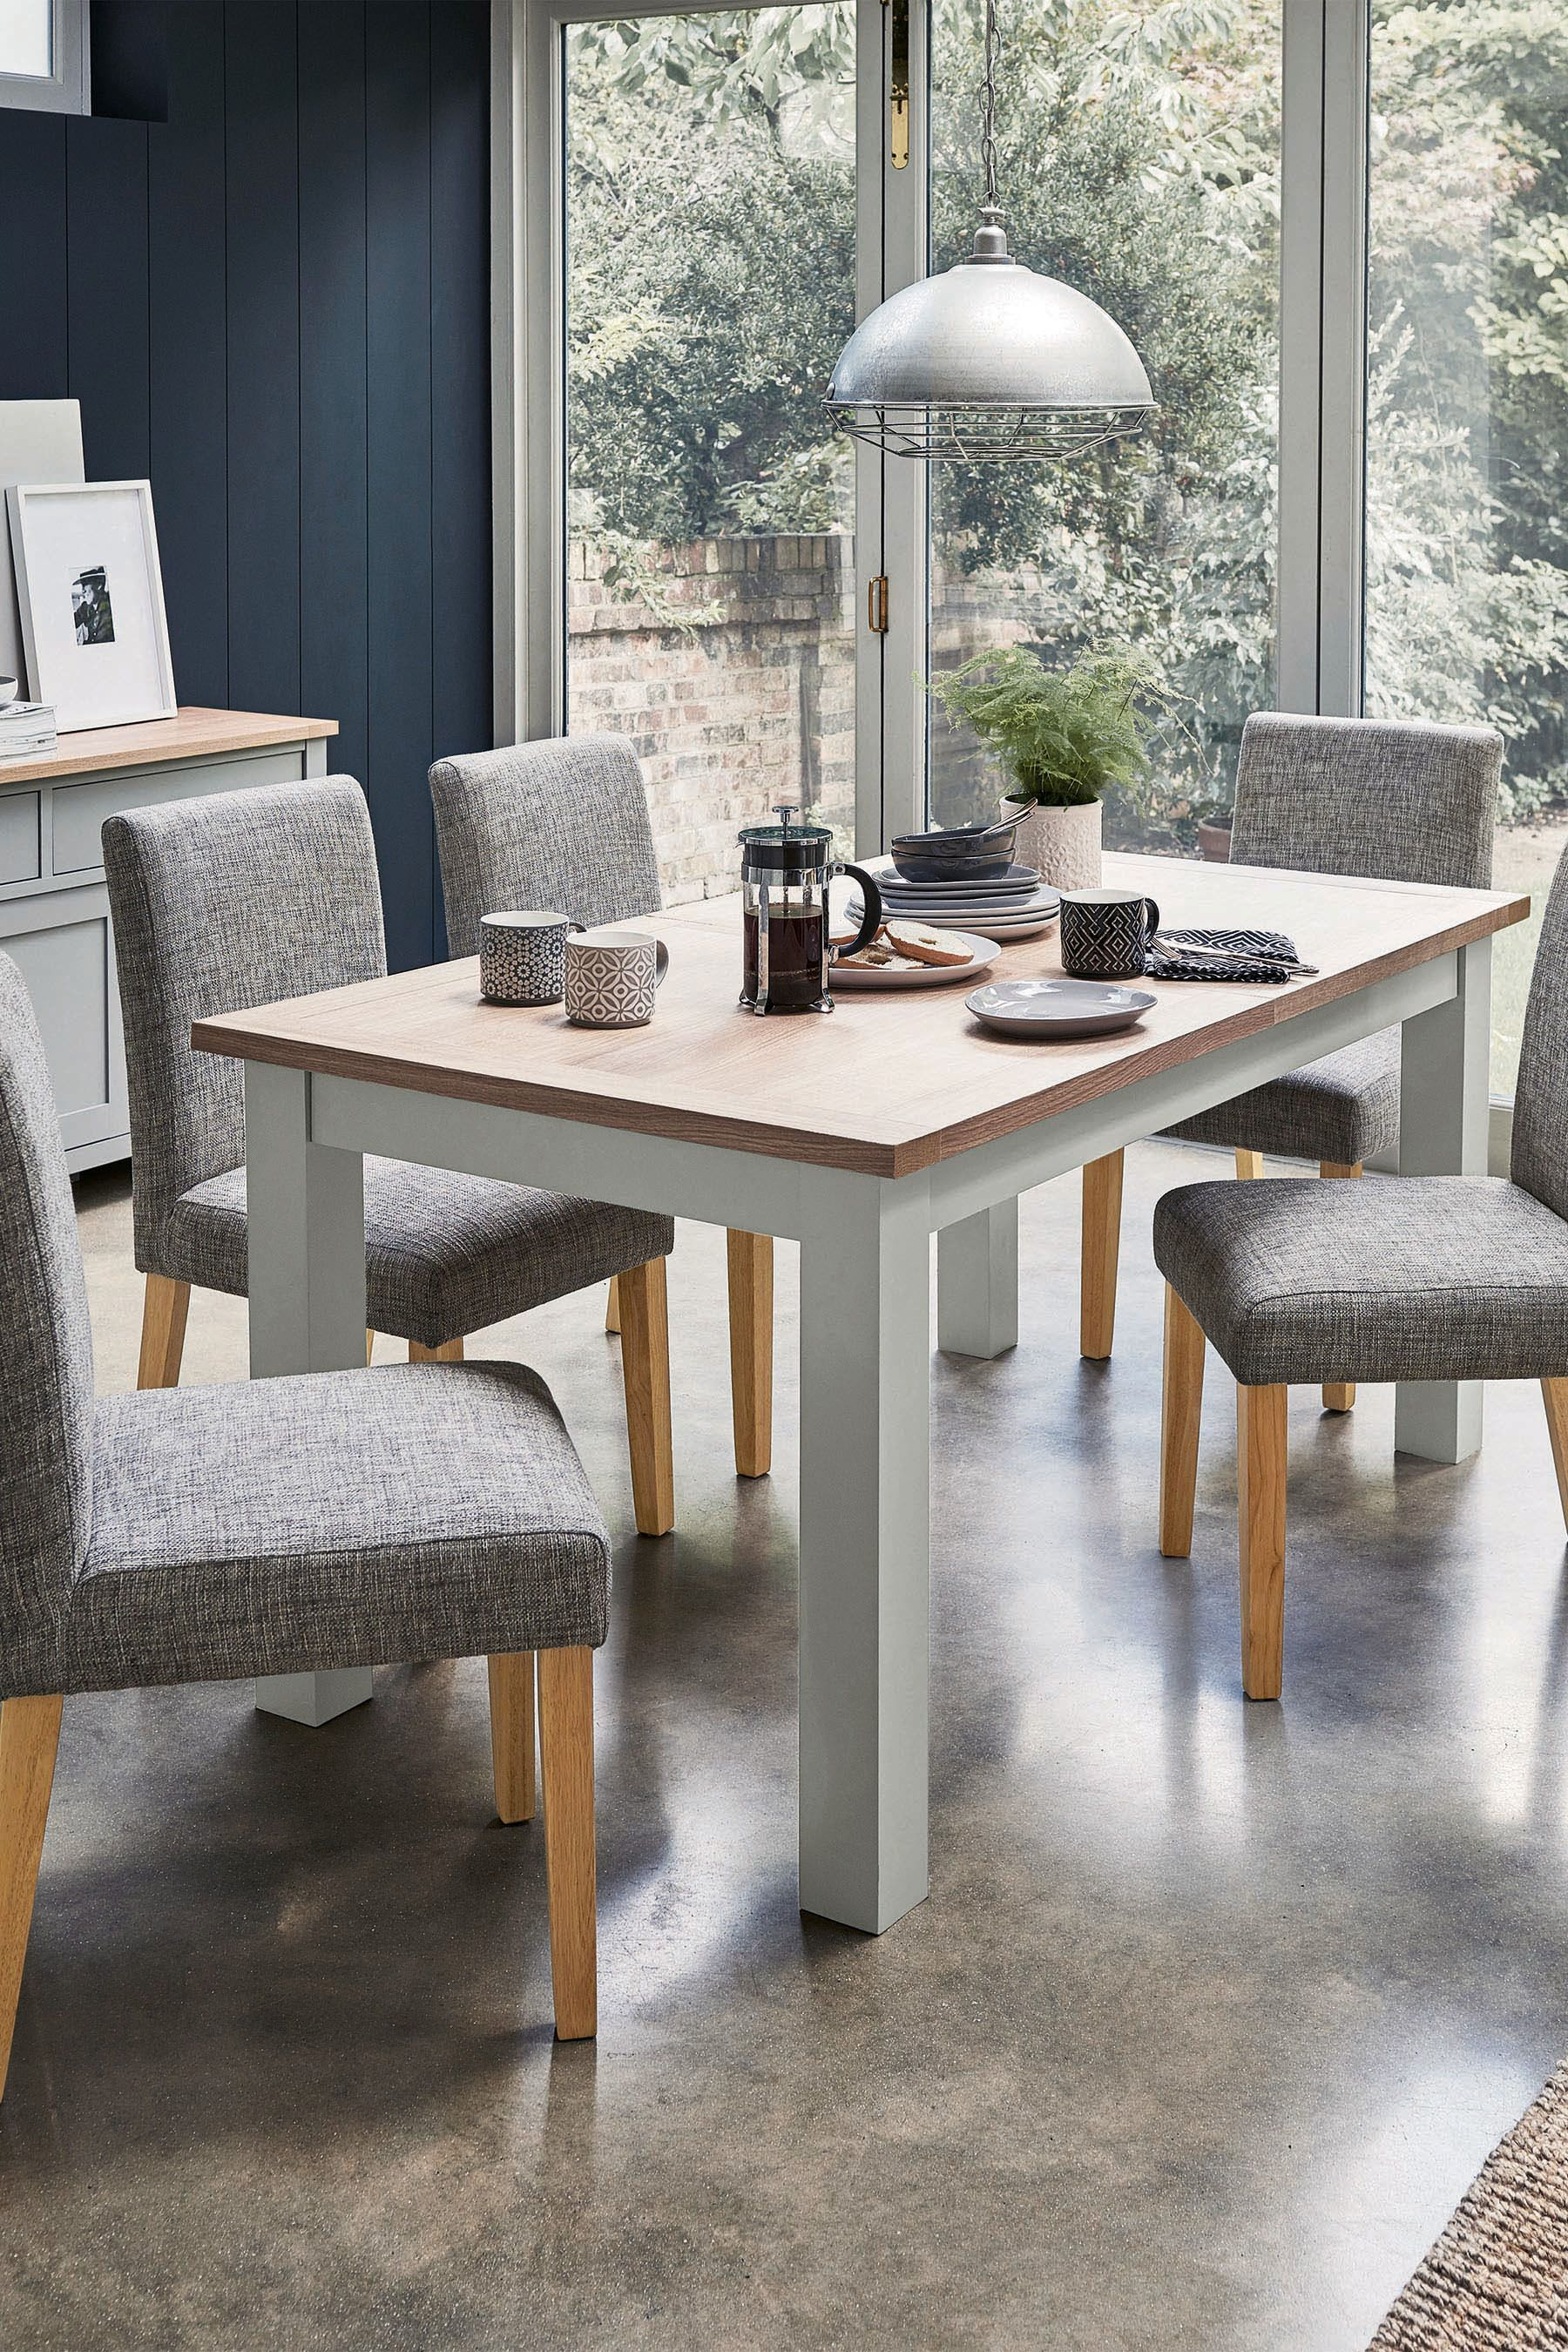 d89991cd2e Buy Malvern 6-10 Seater Double Extending Dining Table from the Next UK  online shop